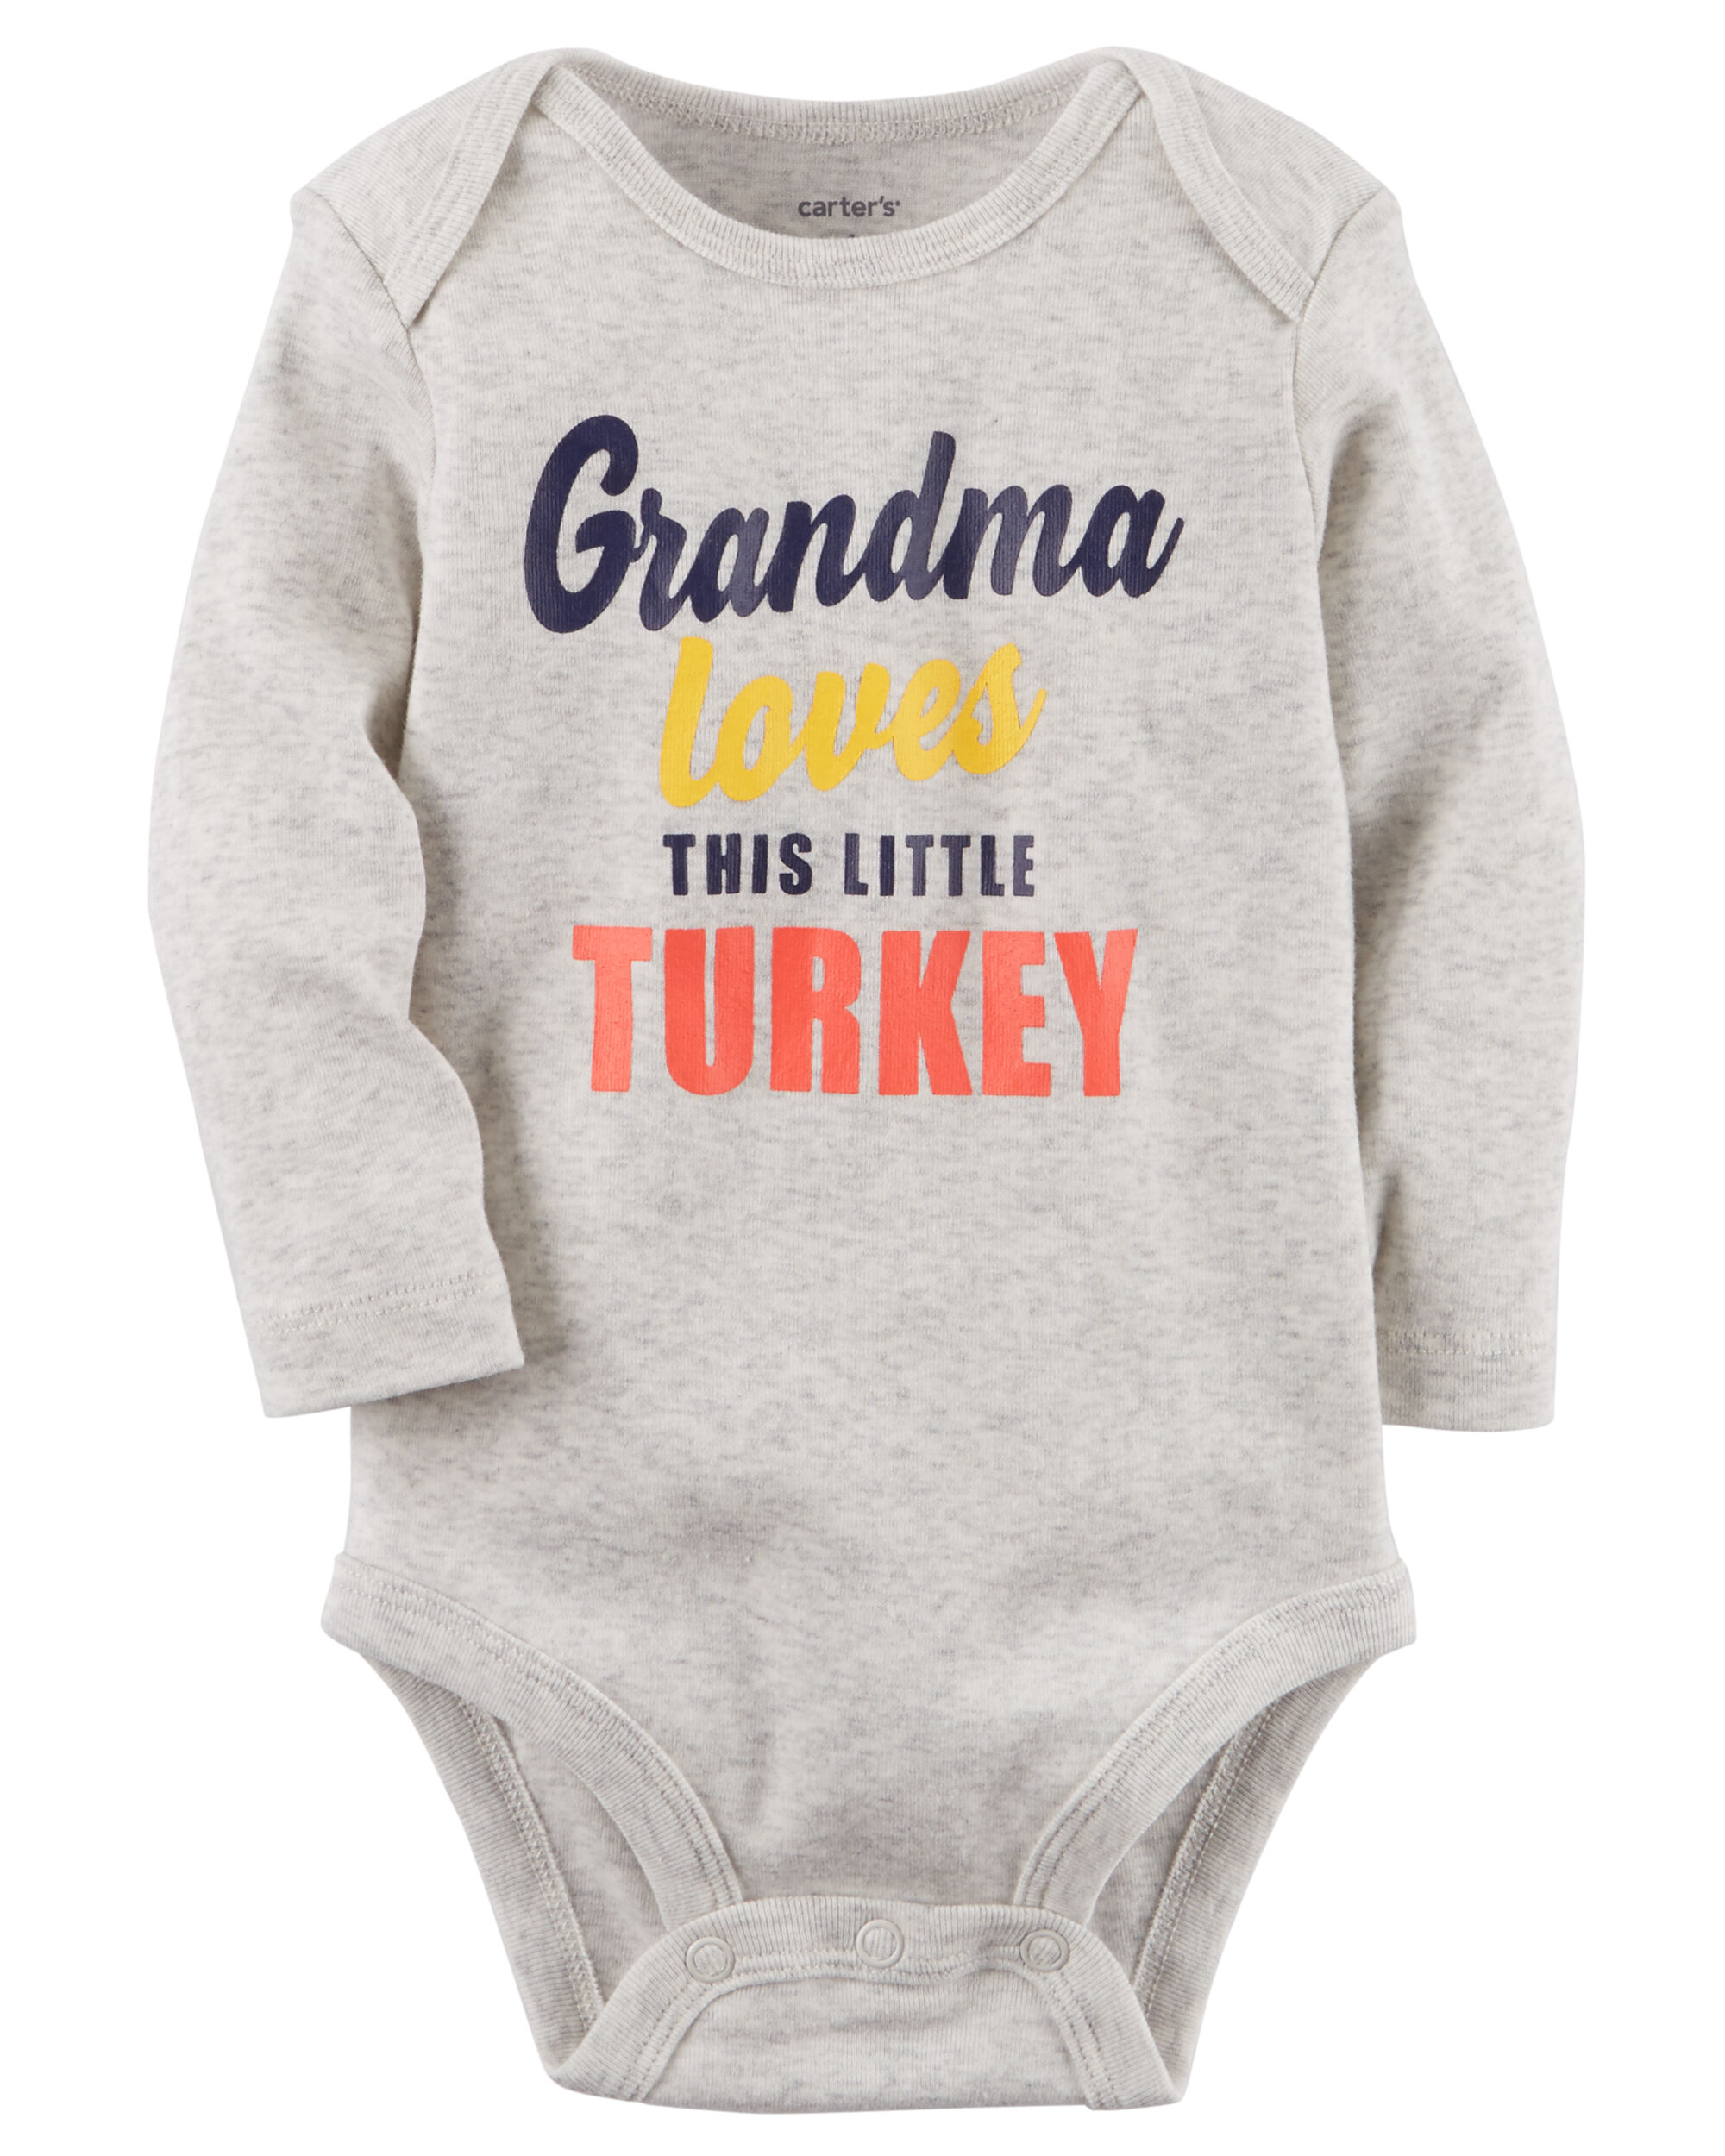 Grandma Loves This Little Turkey Collectible Bodysuit